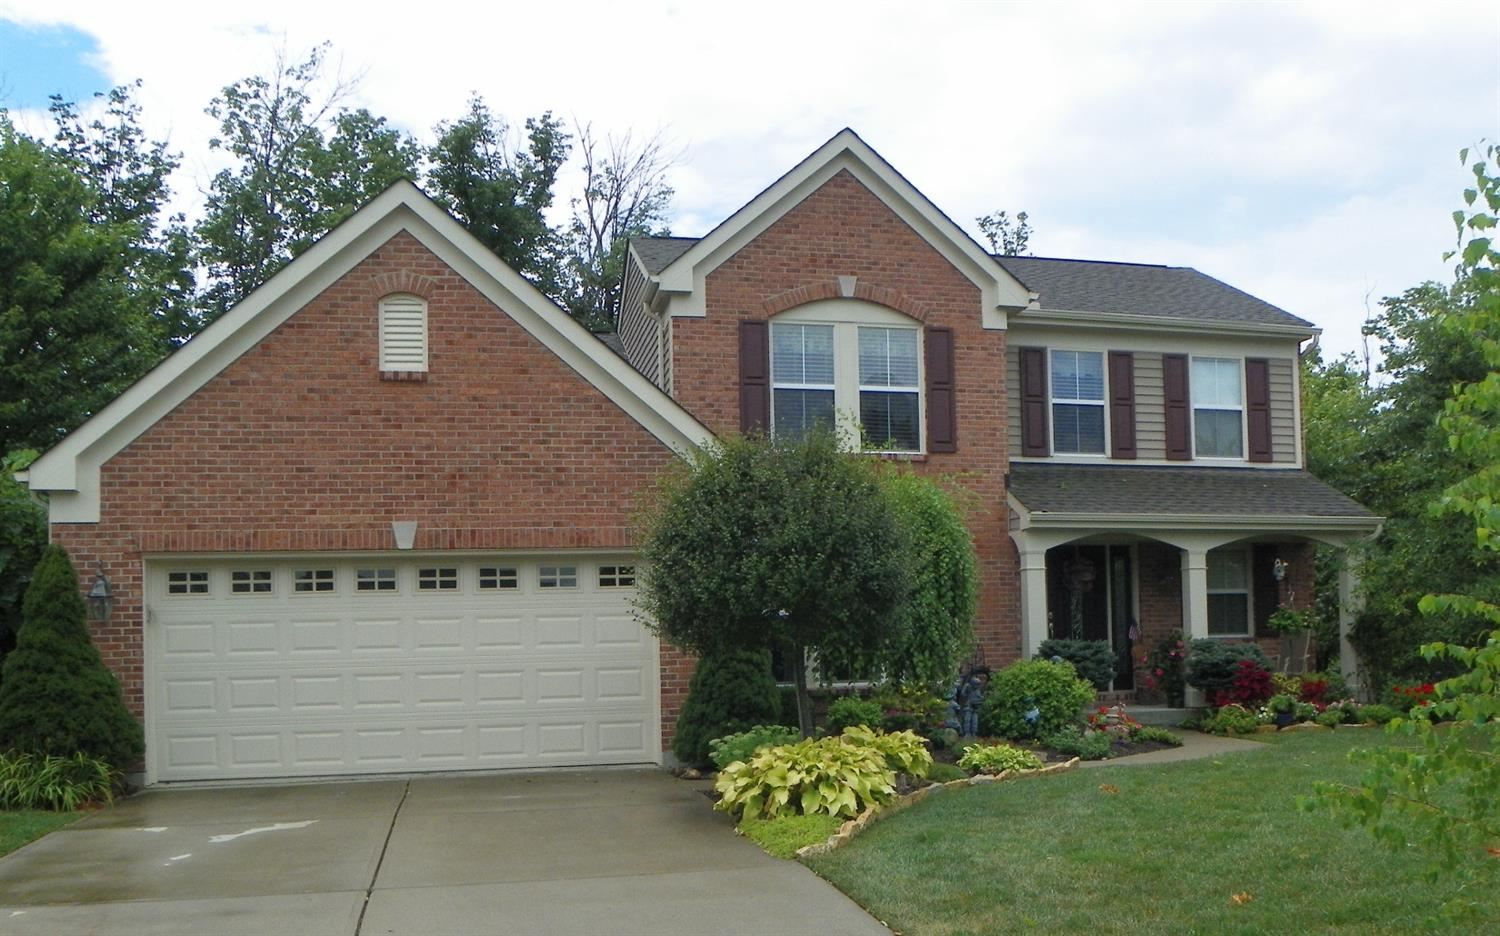 6243 Clearchase Crss Independence, KY